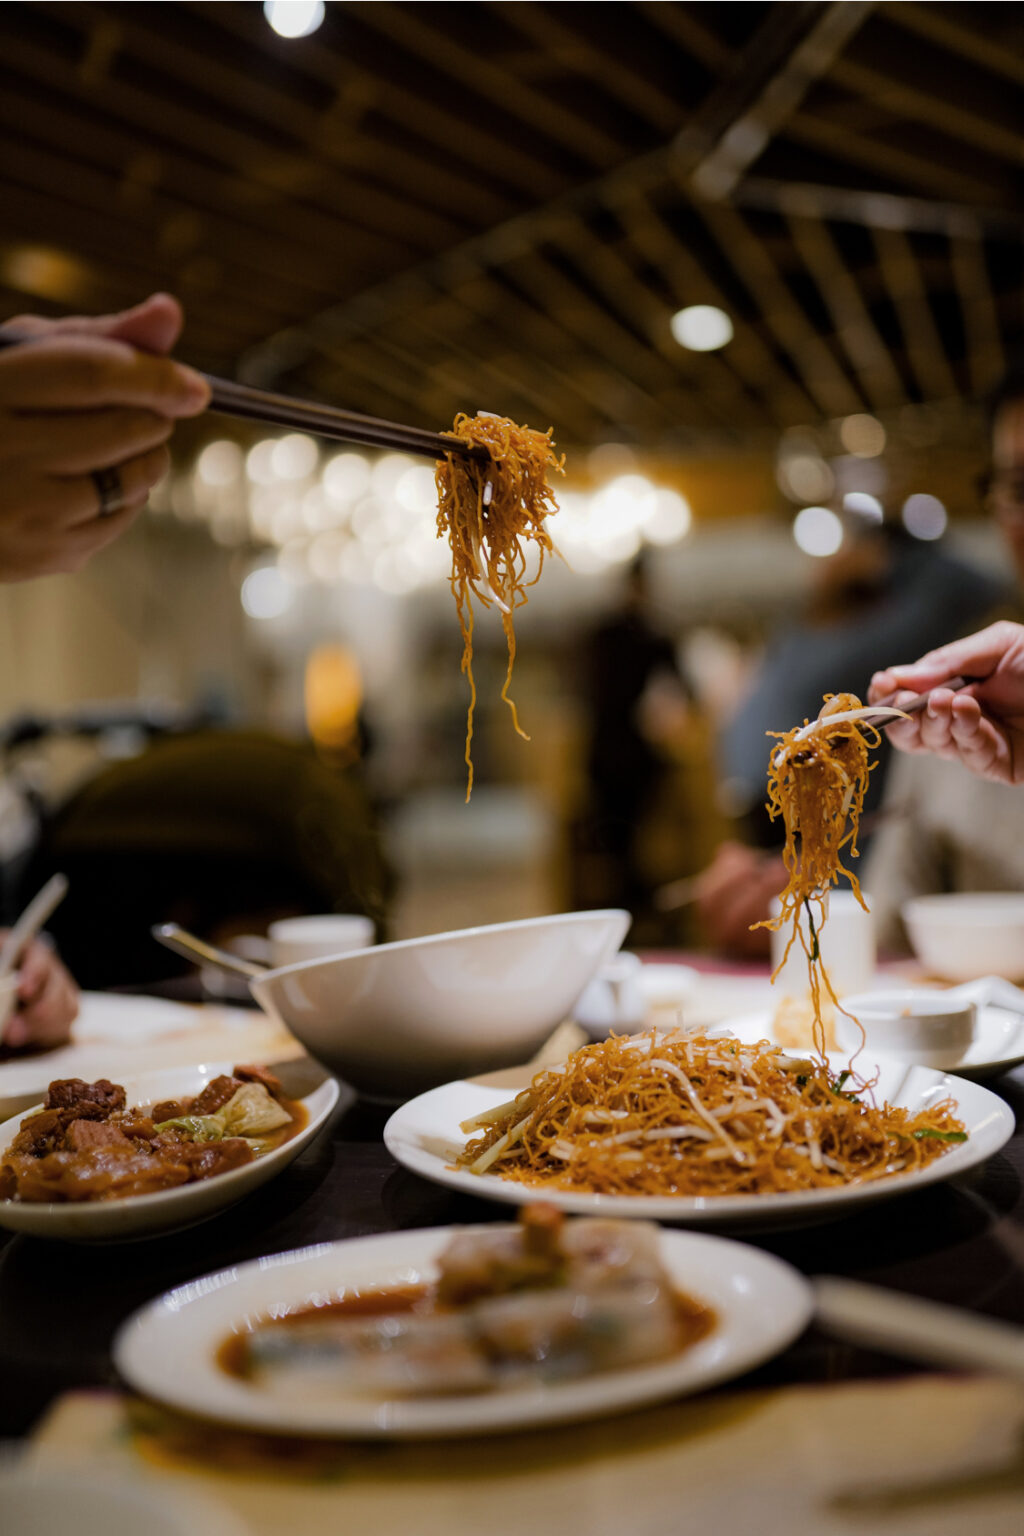 Sharing Chinese Noodles at the table